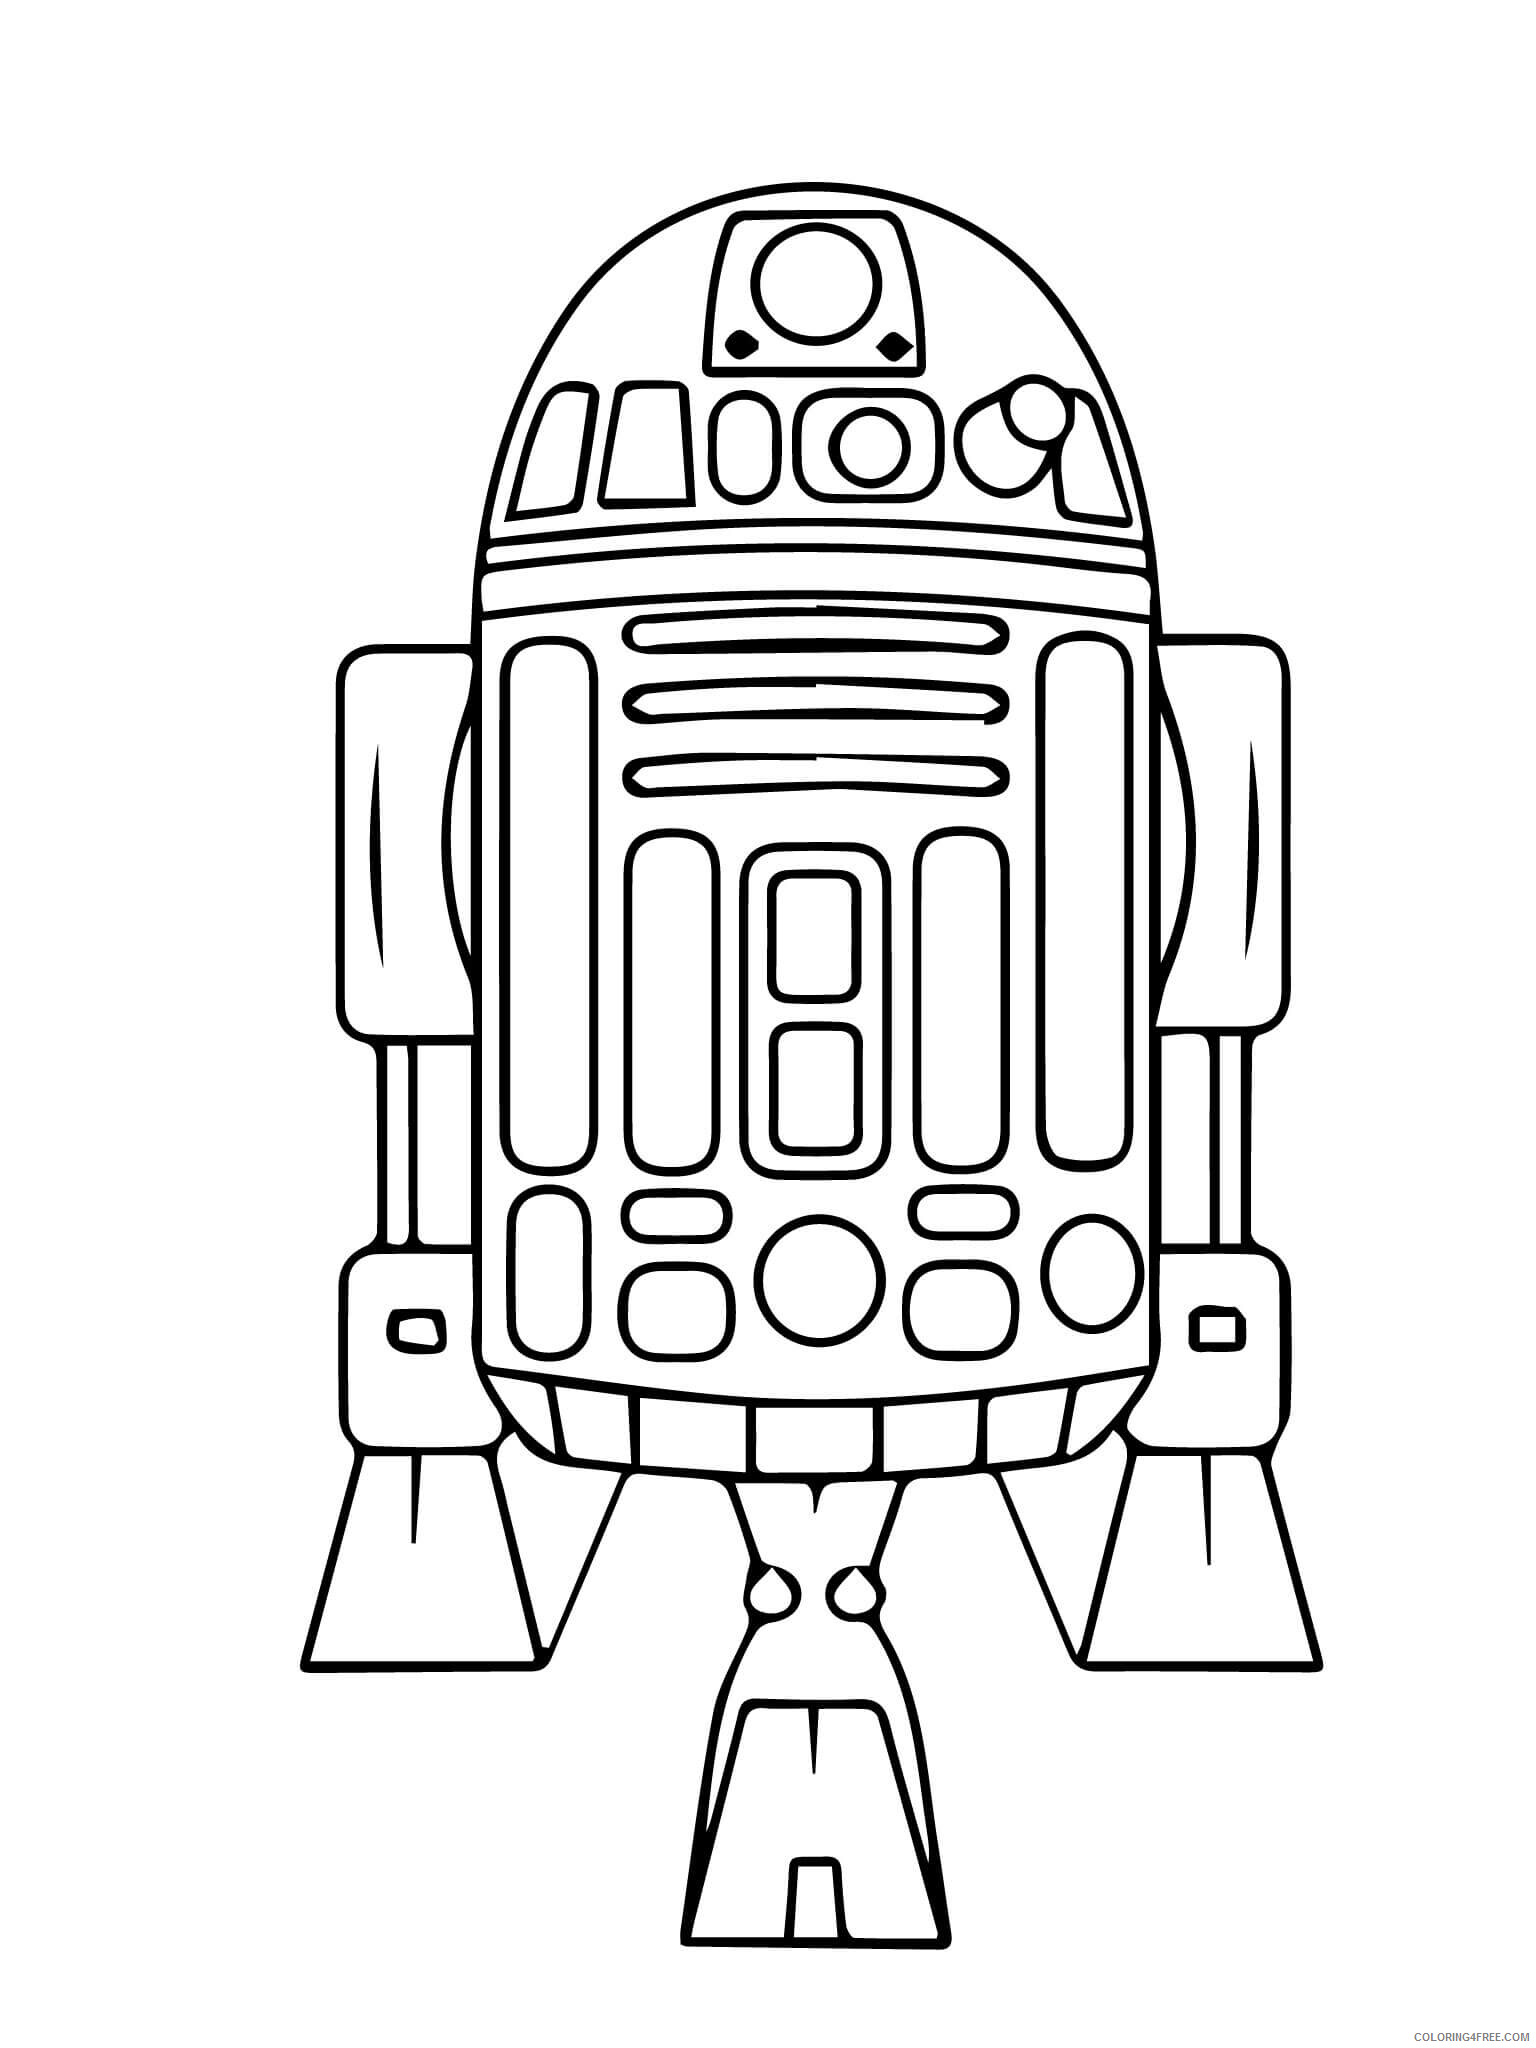 Star Wars R2D2 Coloring Pages TV Film R2D2 Printable 2020 08062 Coloring4free